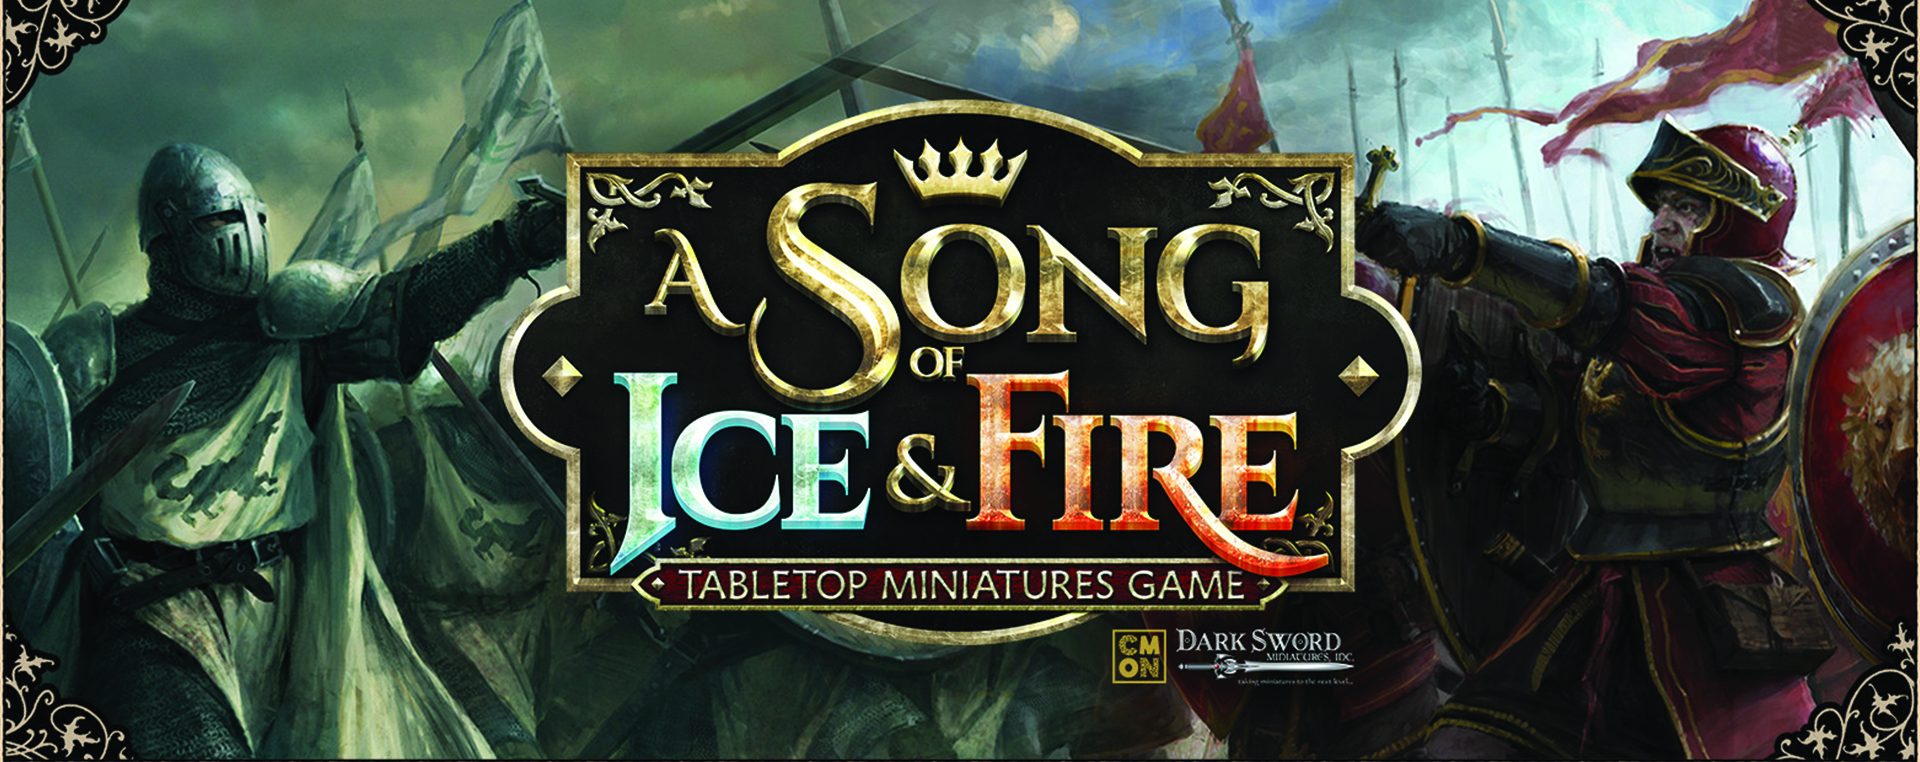 a song of ice & fire -